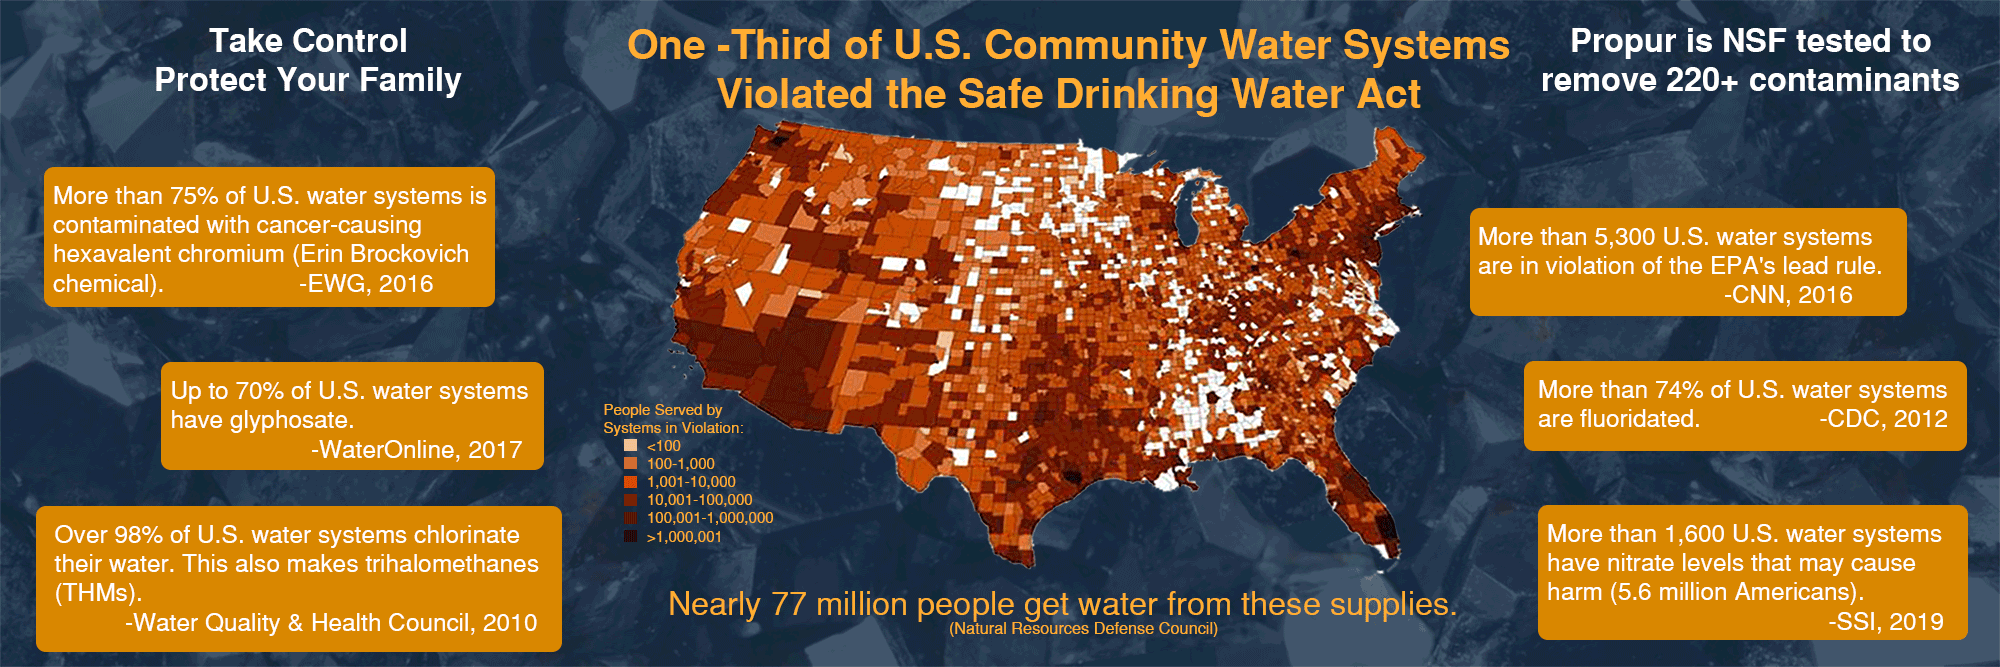 u.s. water systems contaminants map